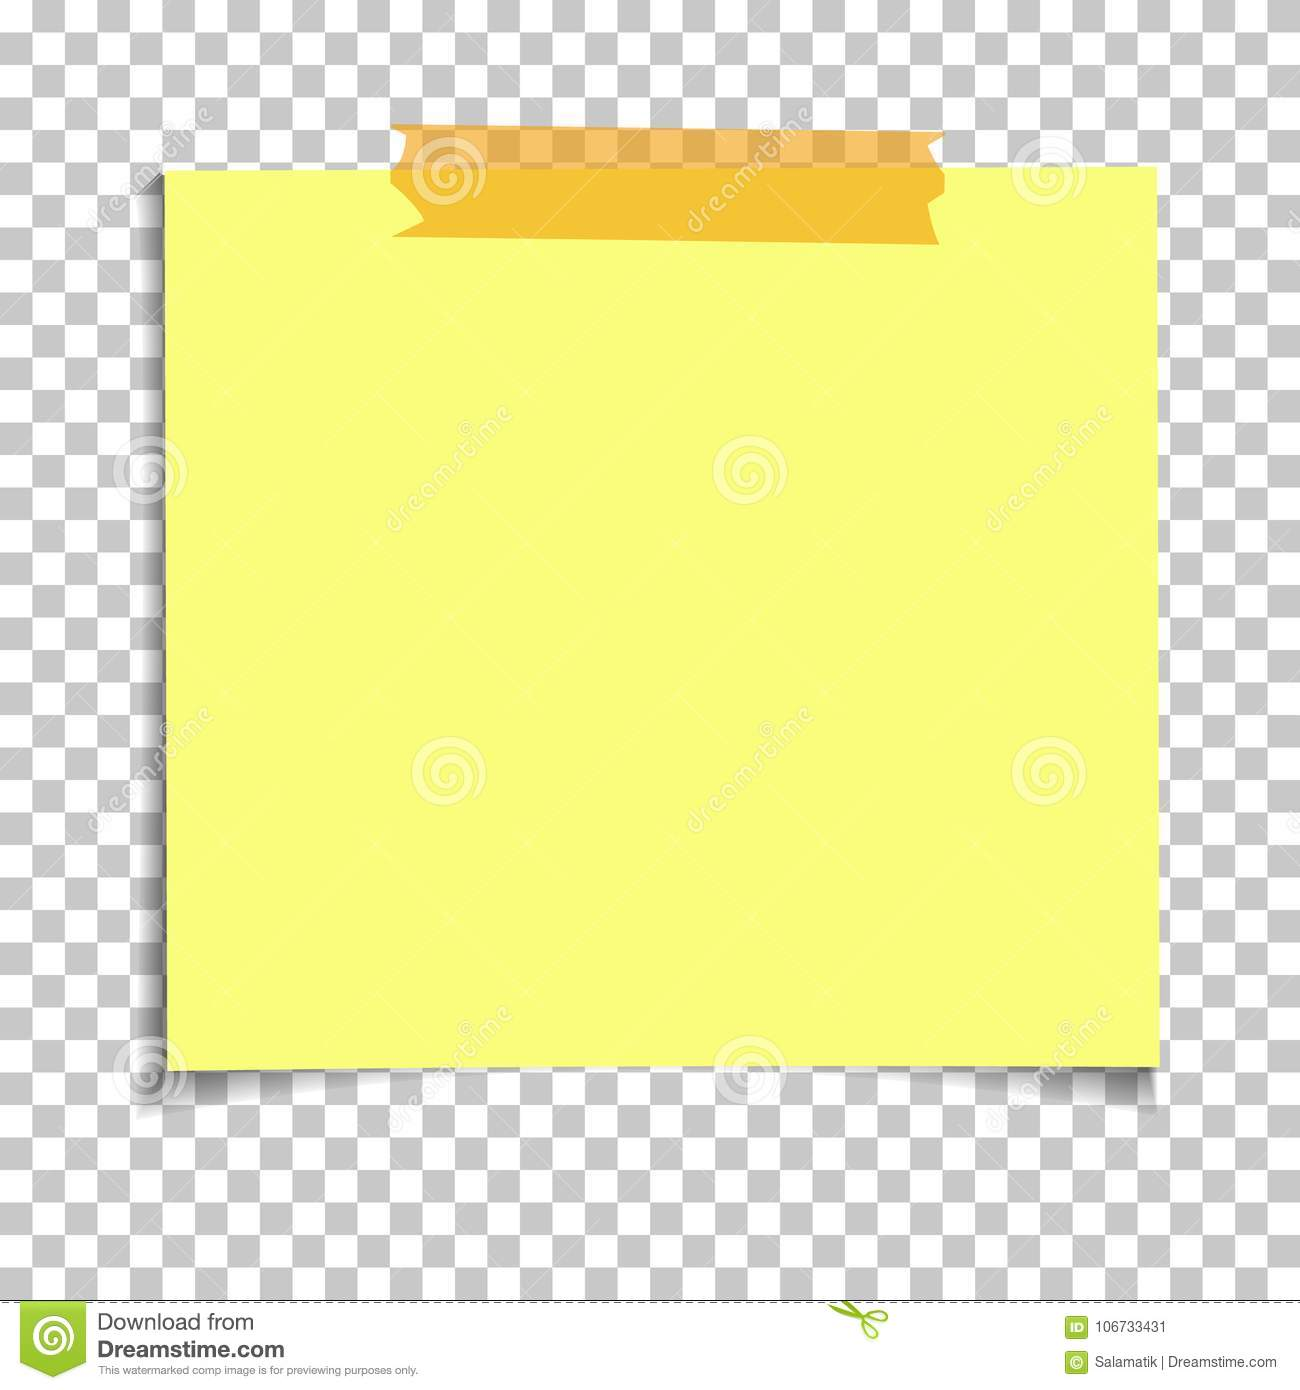 Office Yellow Paper Sticky Note On Transparent Background Template